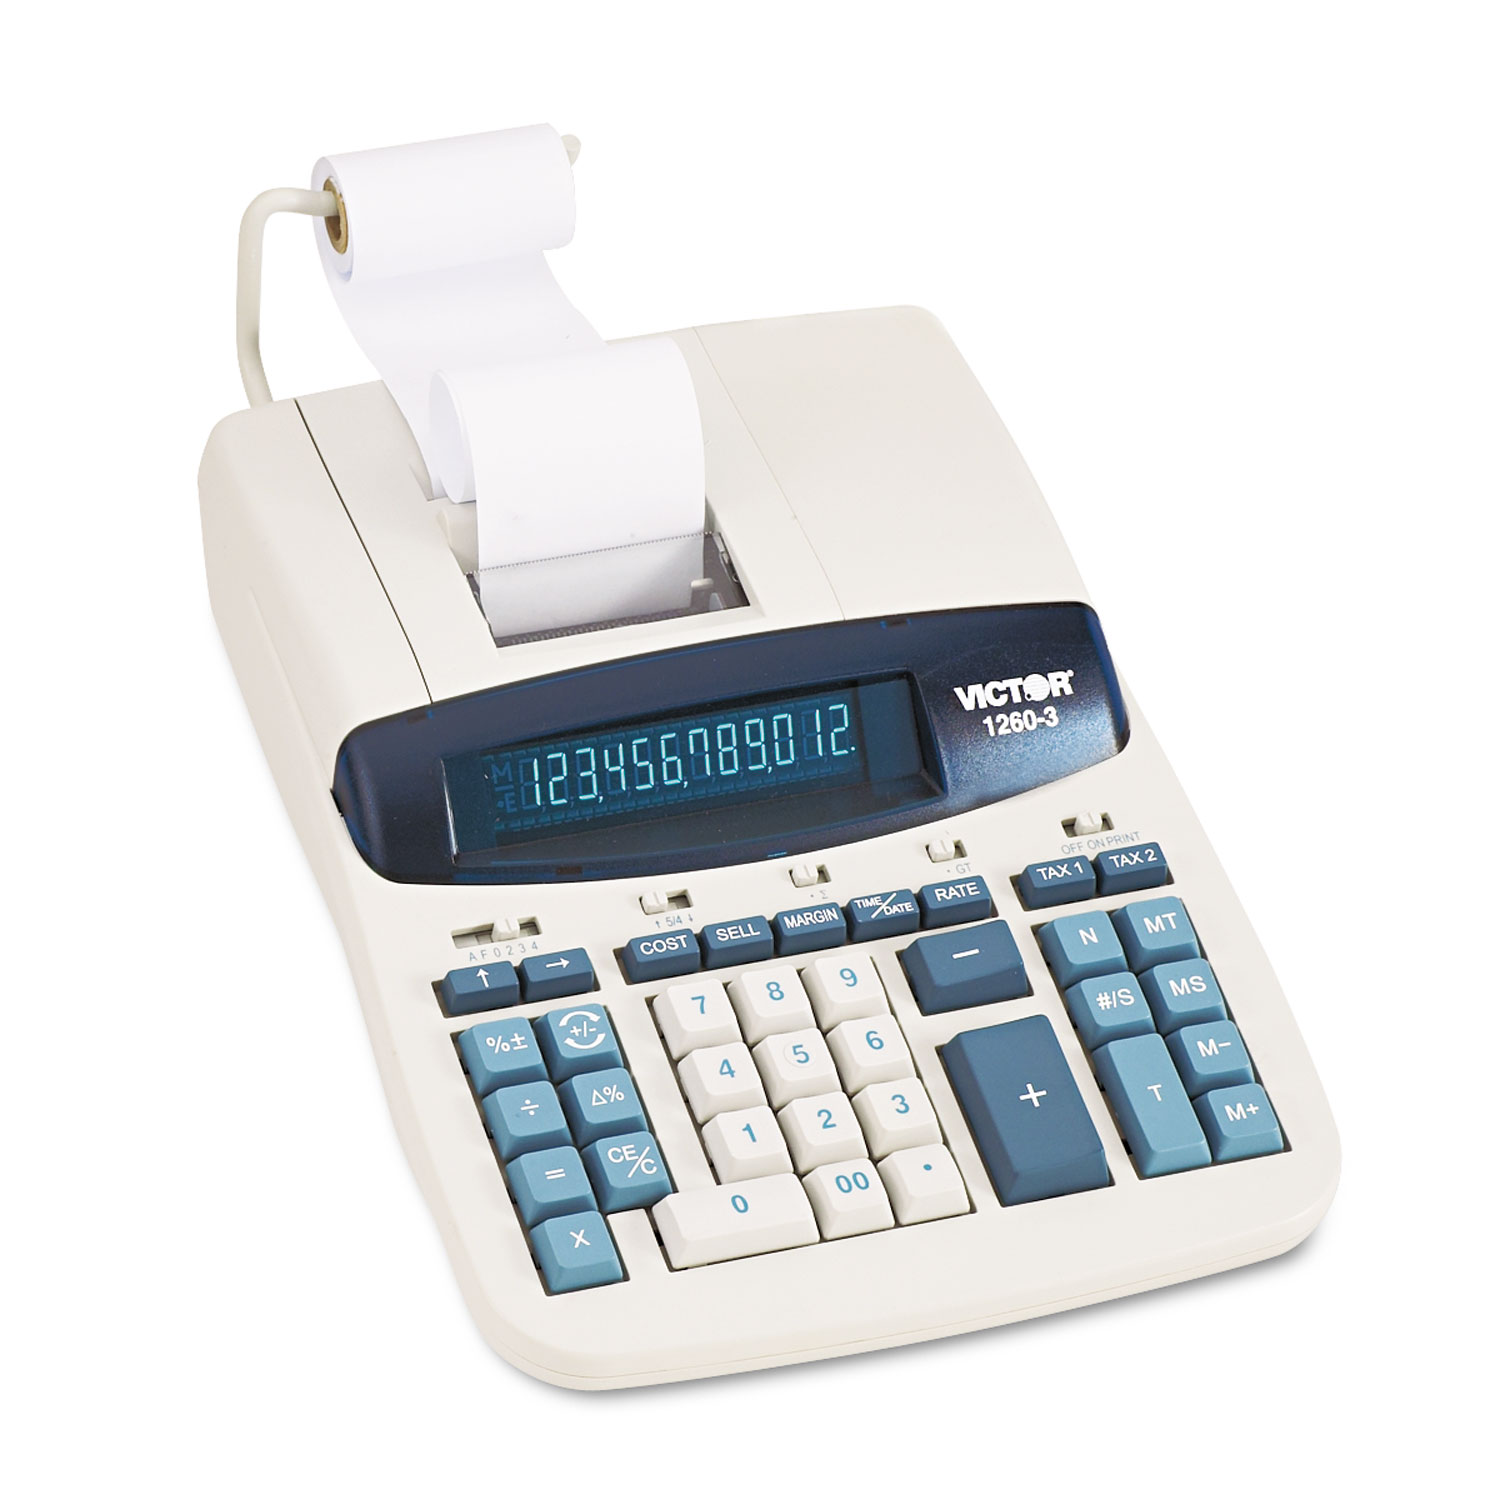 1260-3 Two-Color Heavy-Duty Printing Calculator, Black/Red